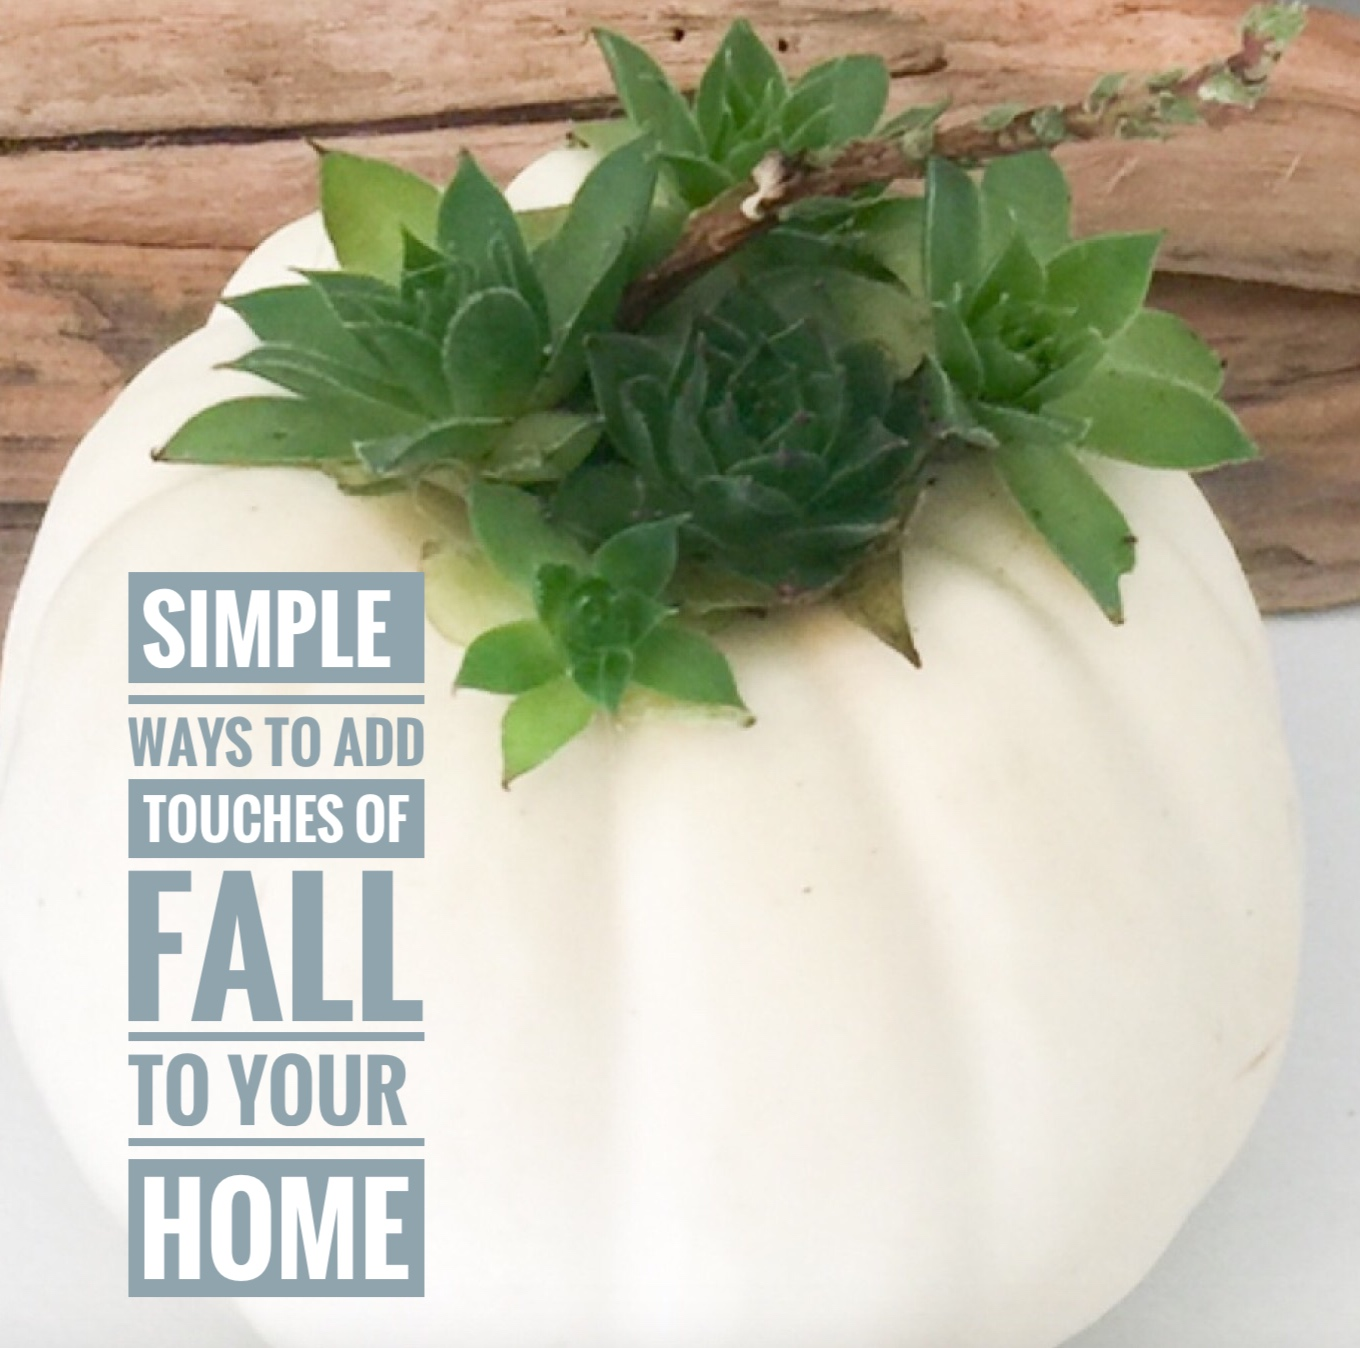 Simple Touches to add for Fall to your home.